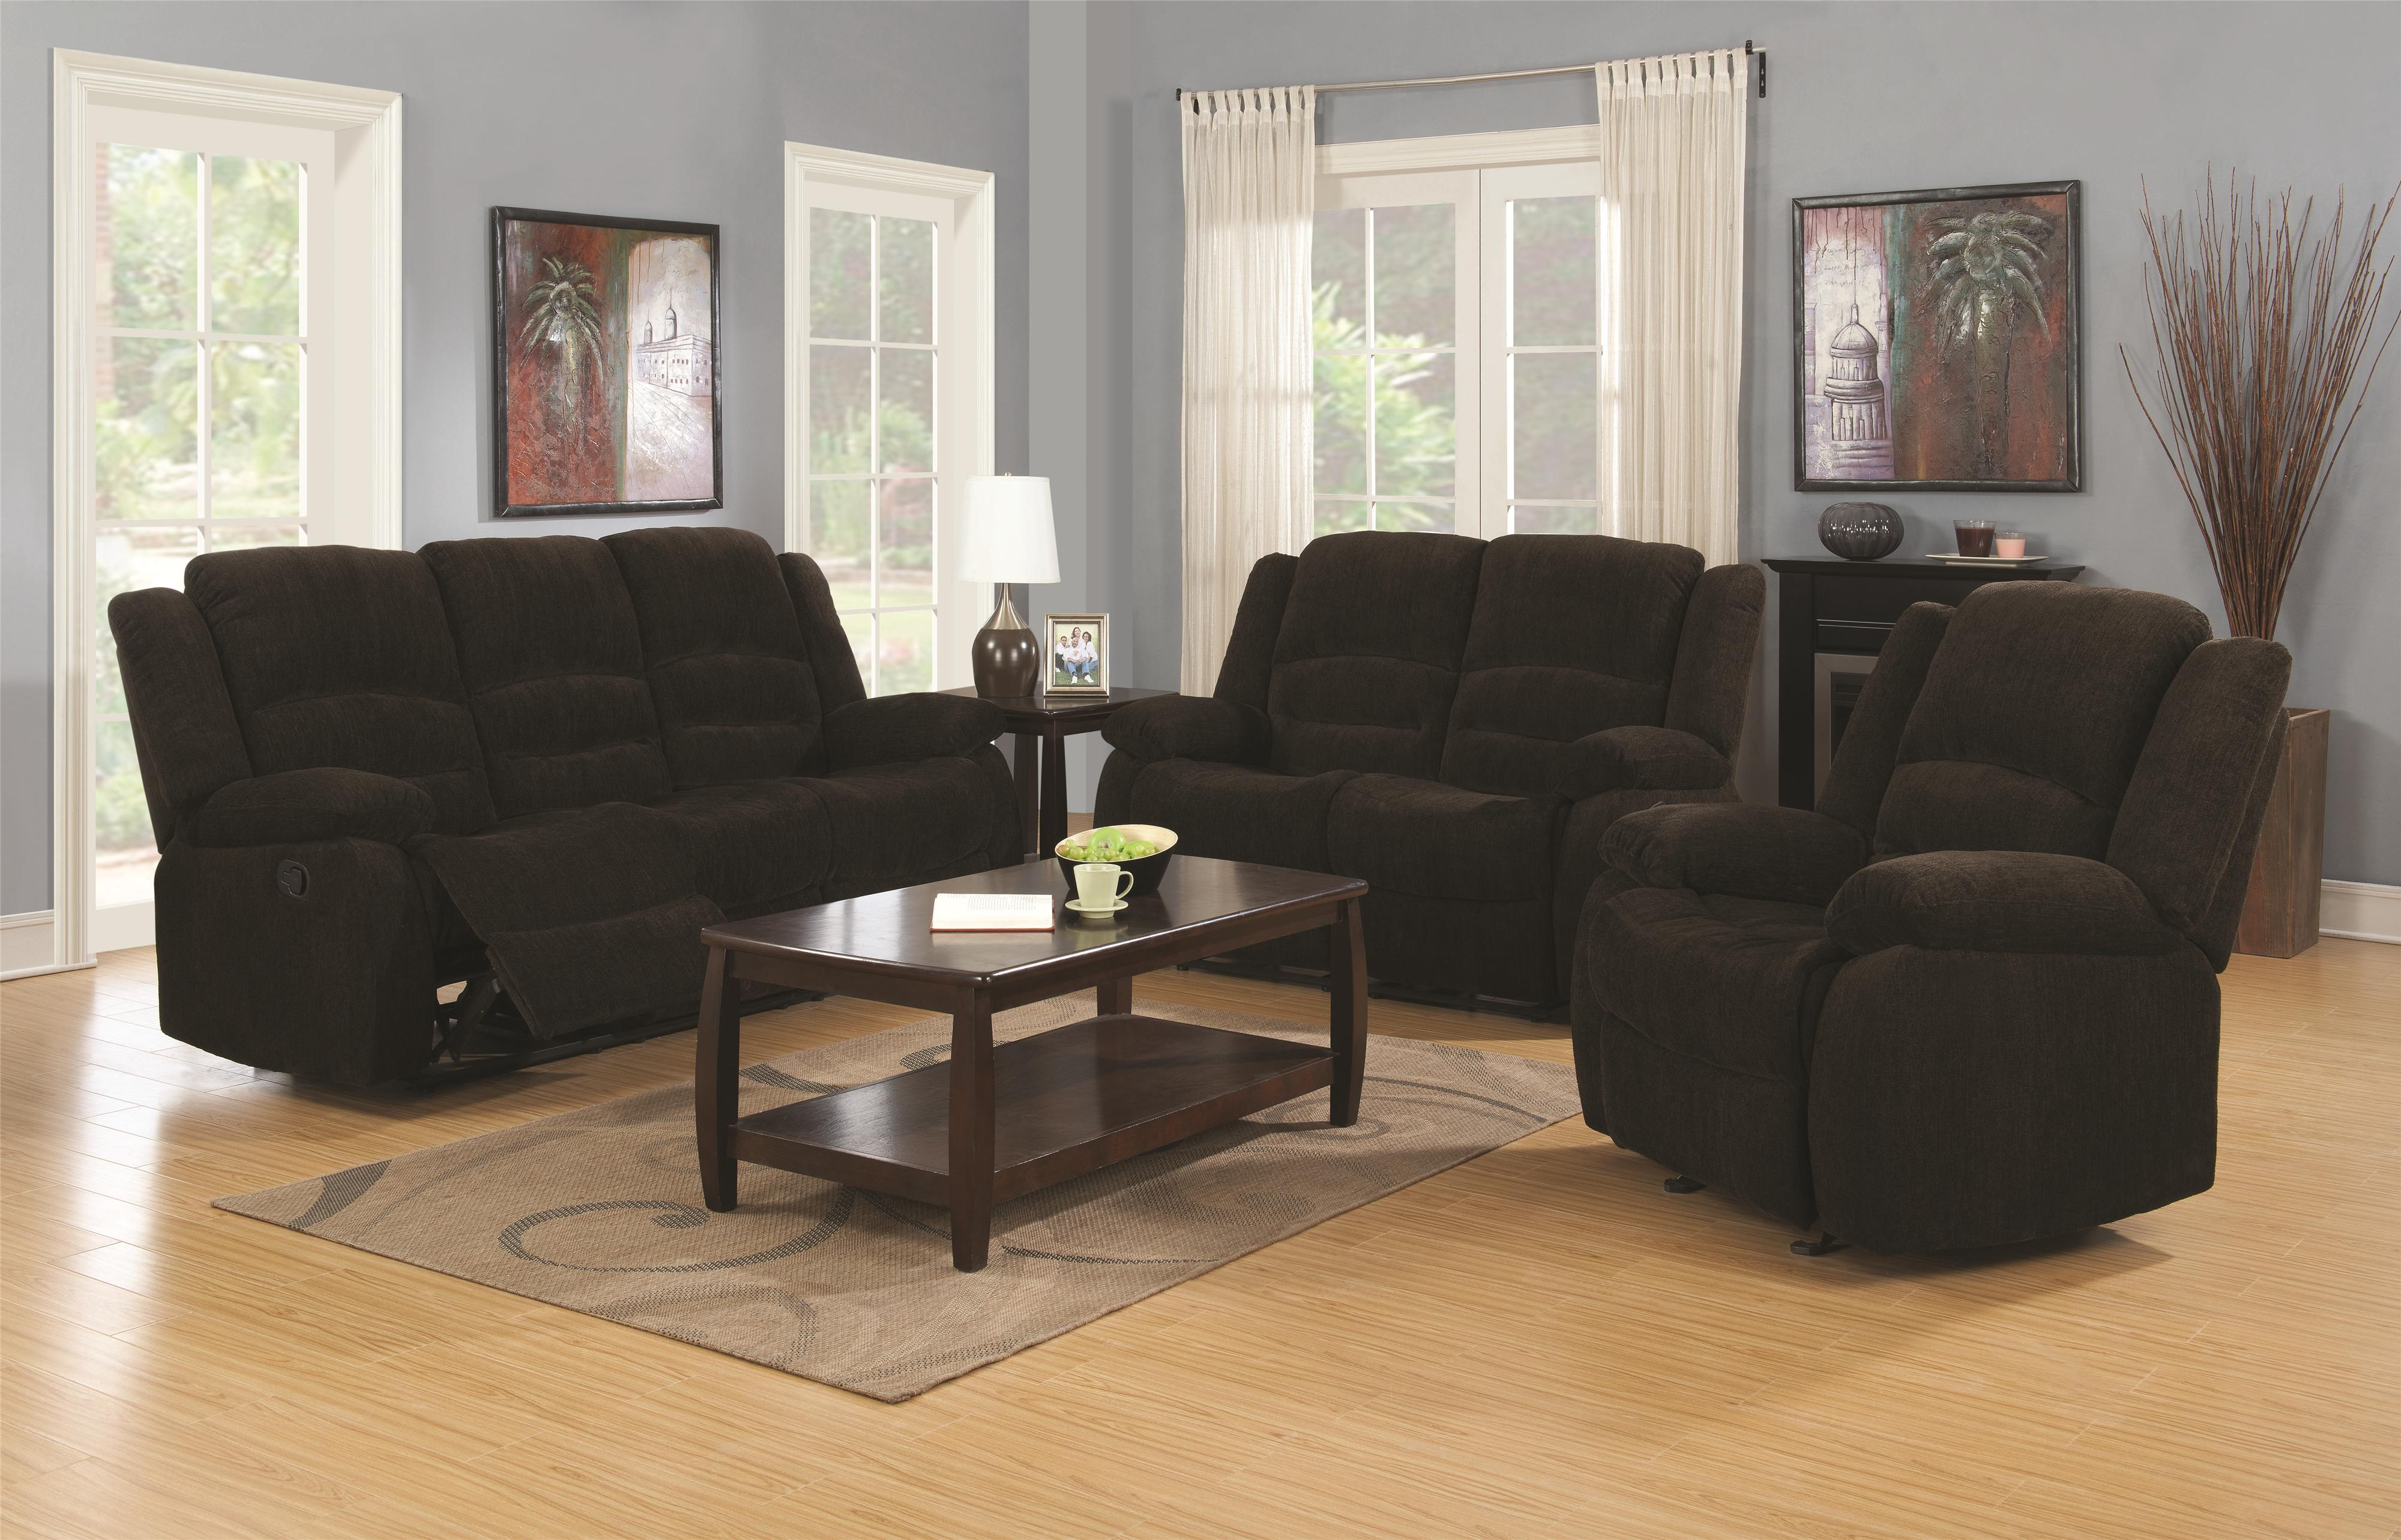 Gordon Reclining Living Room Group by Coaster at Northeast Factory Direct